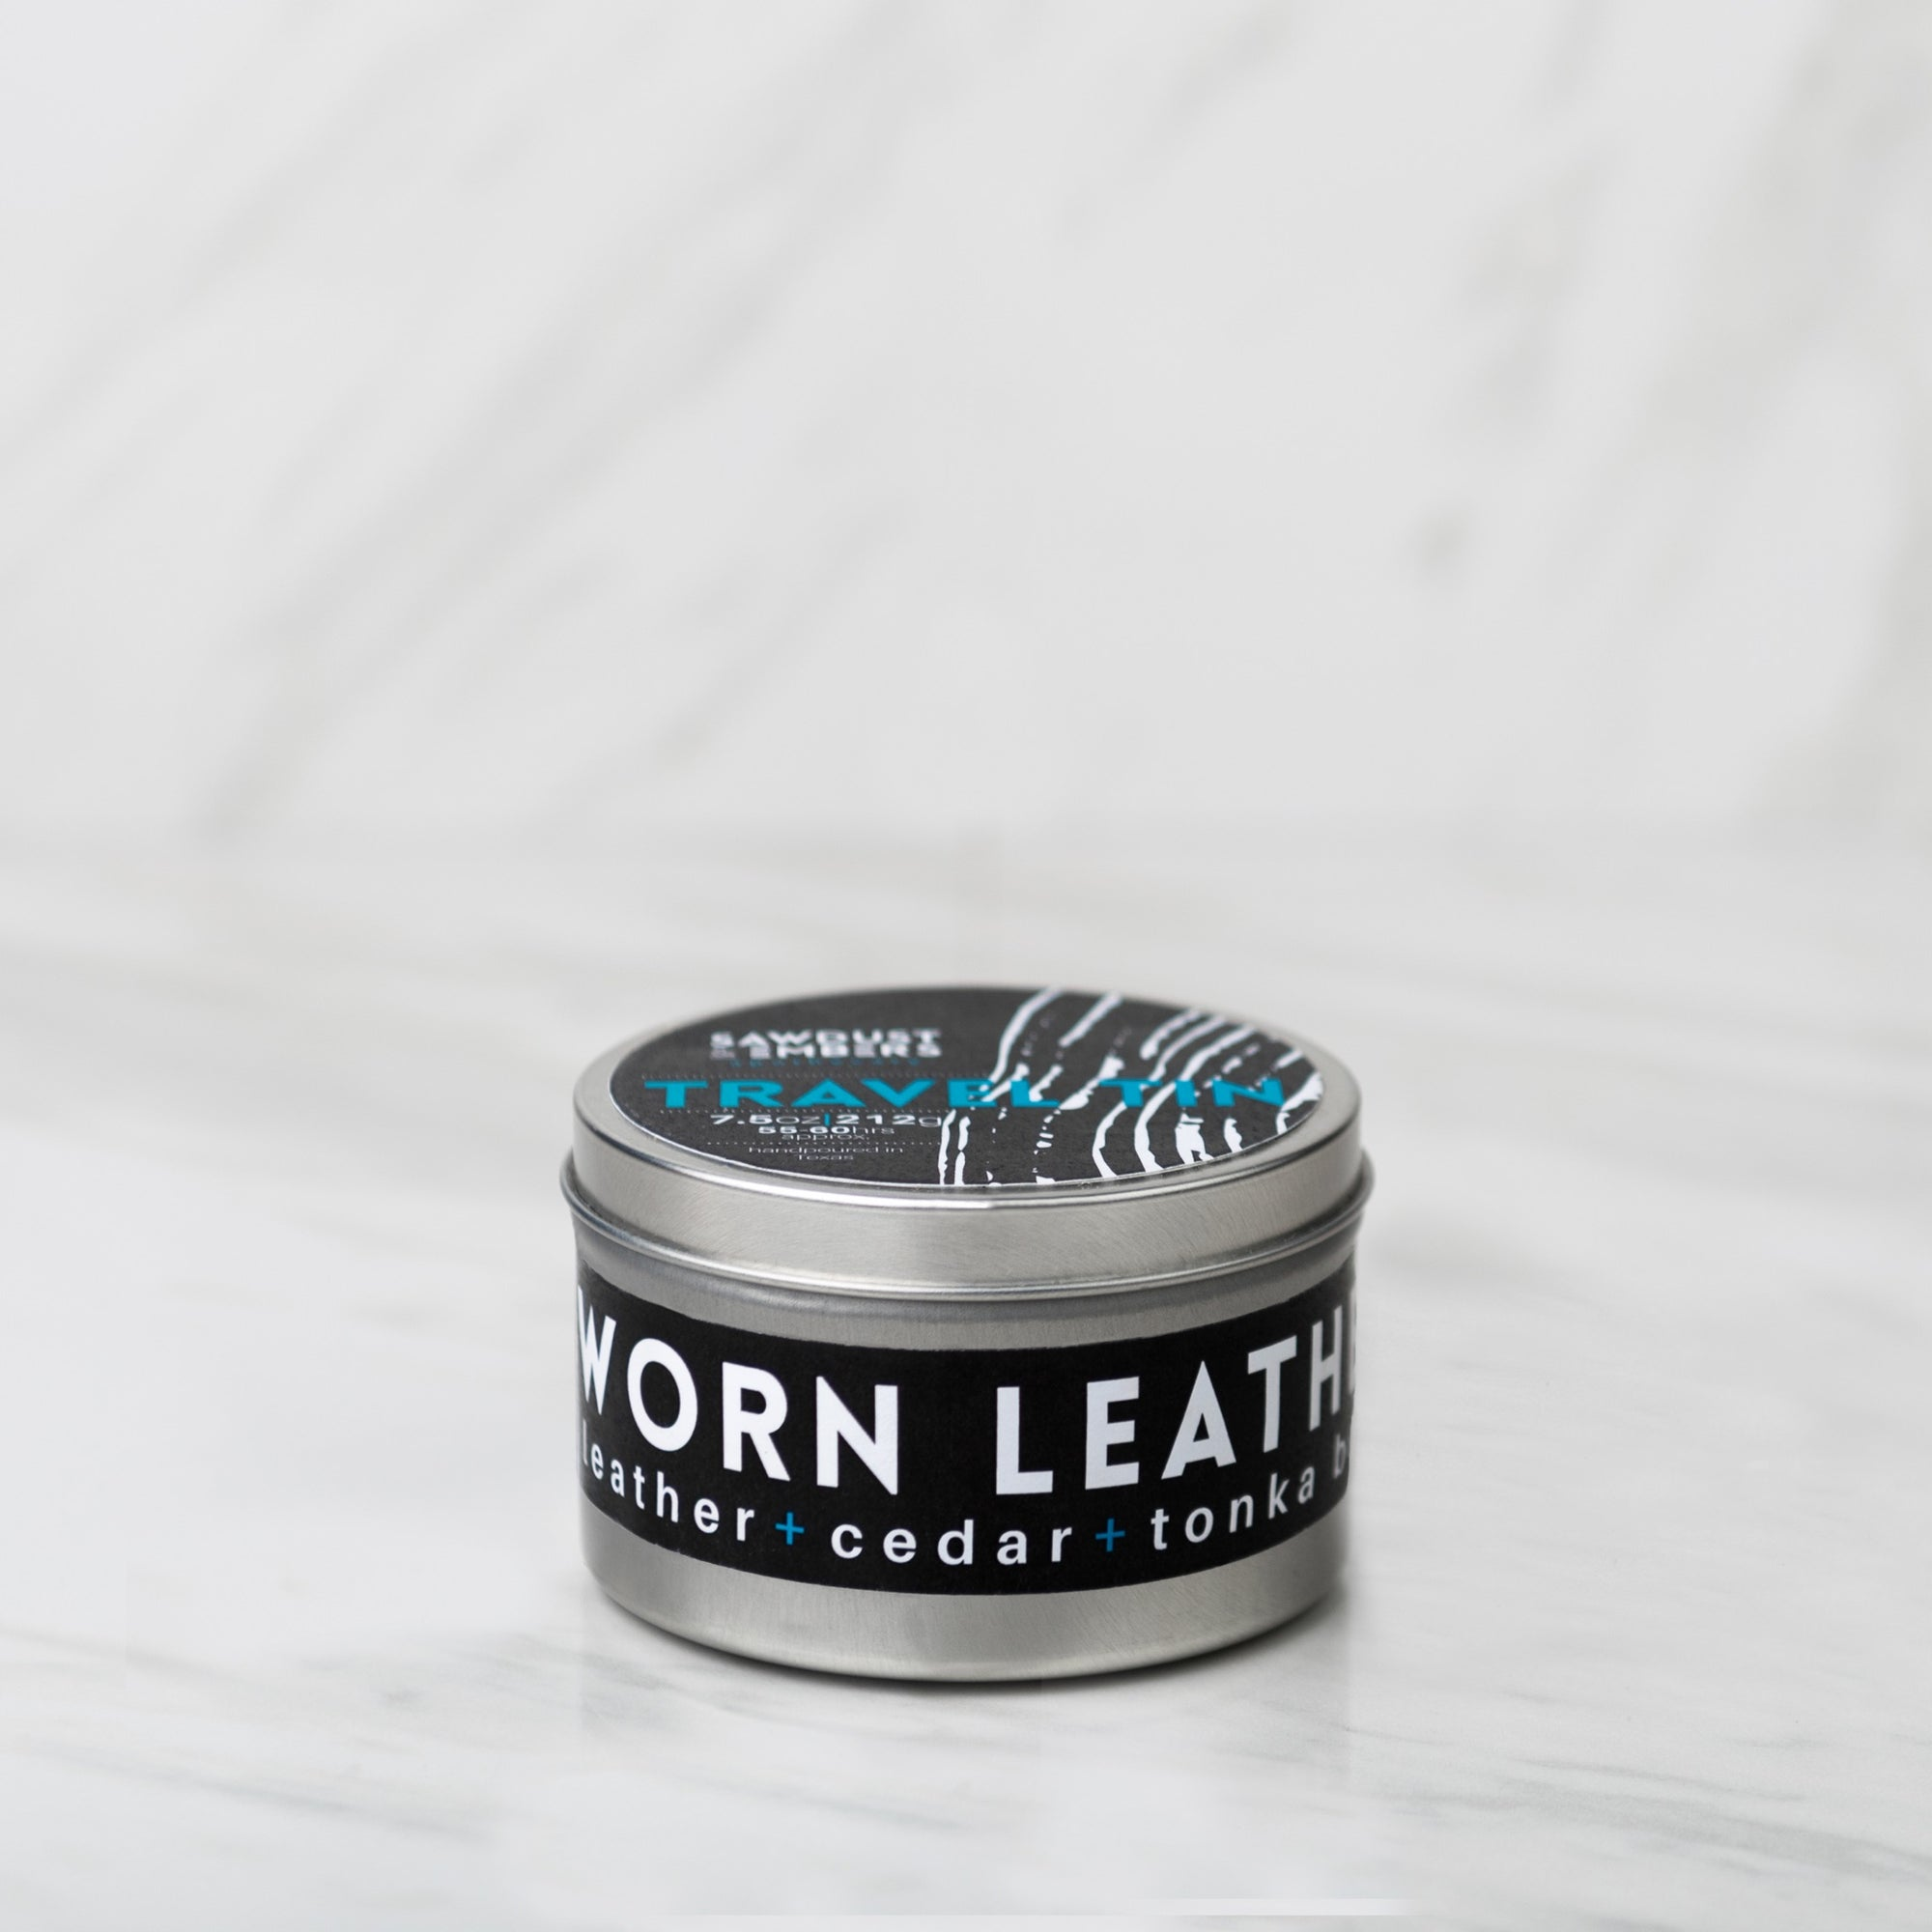 Worn Leather Travel Candle